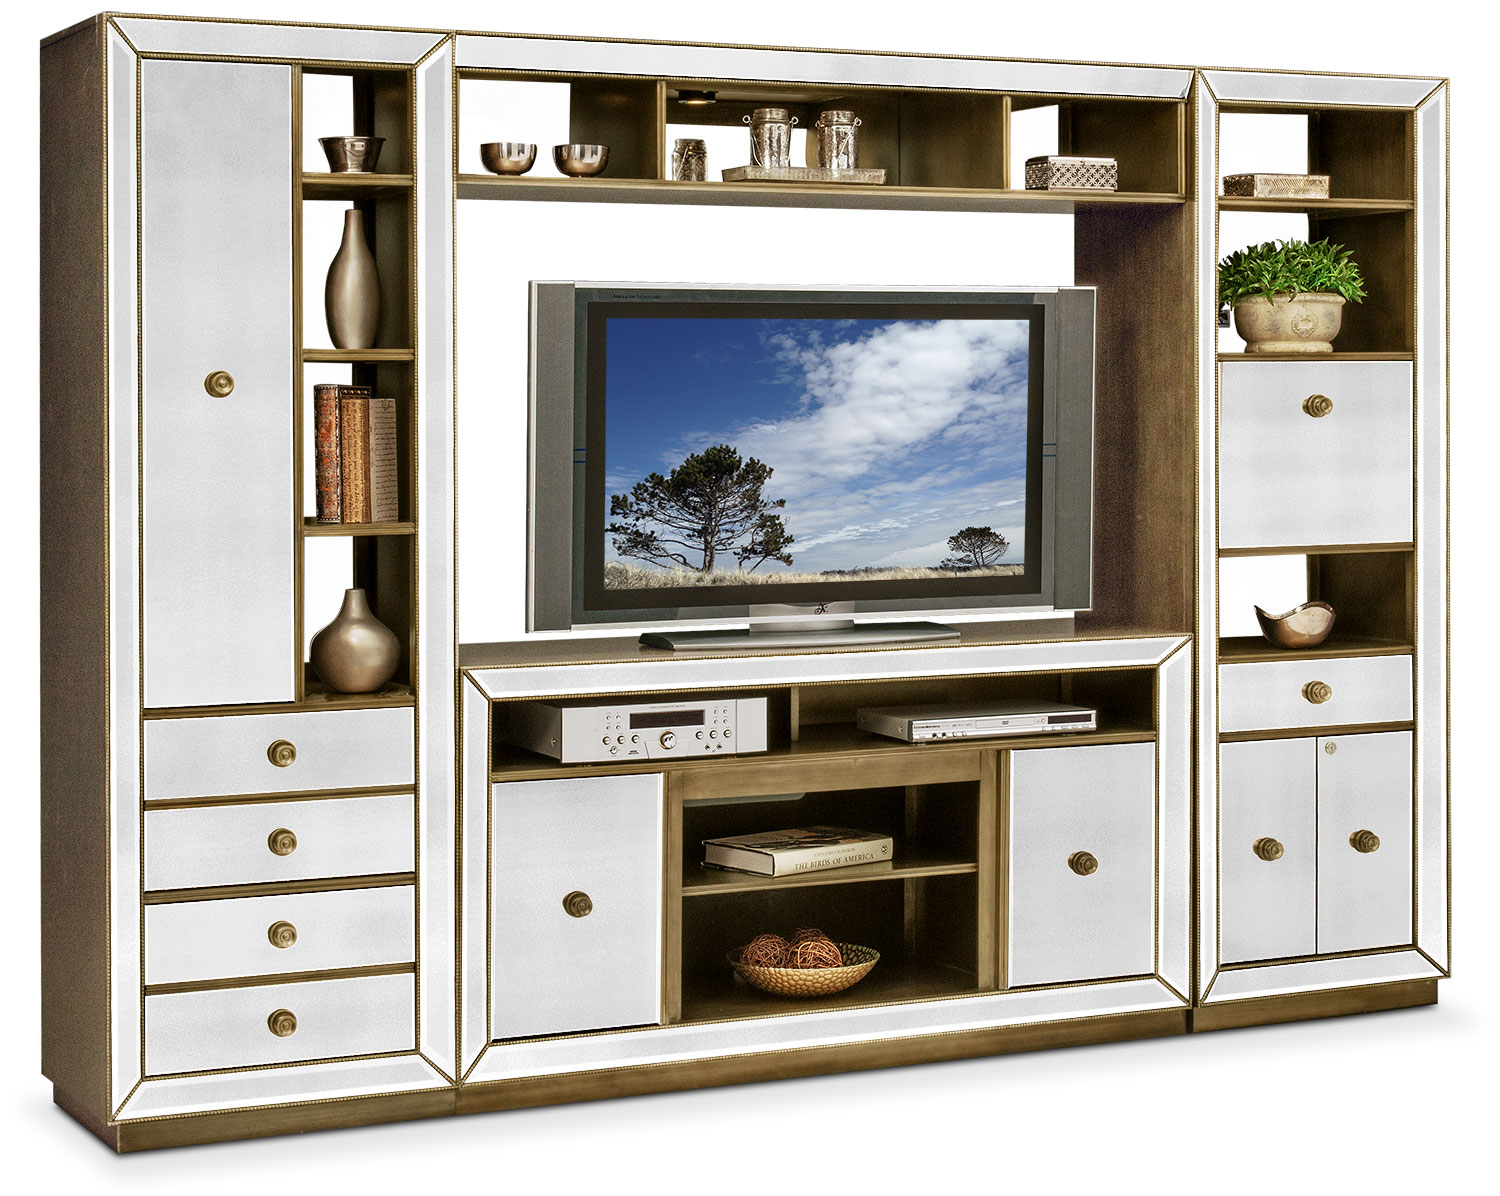 living room storage cabinets | value city furniture